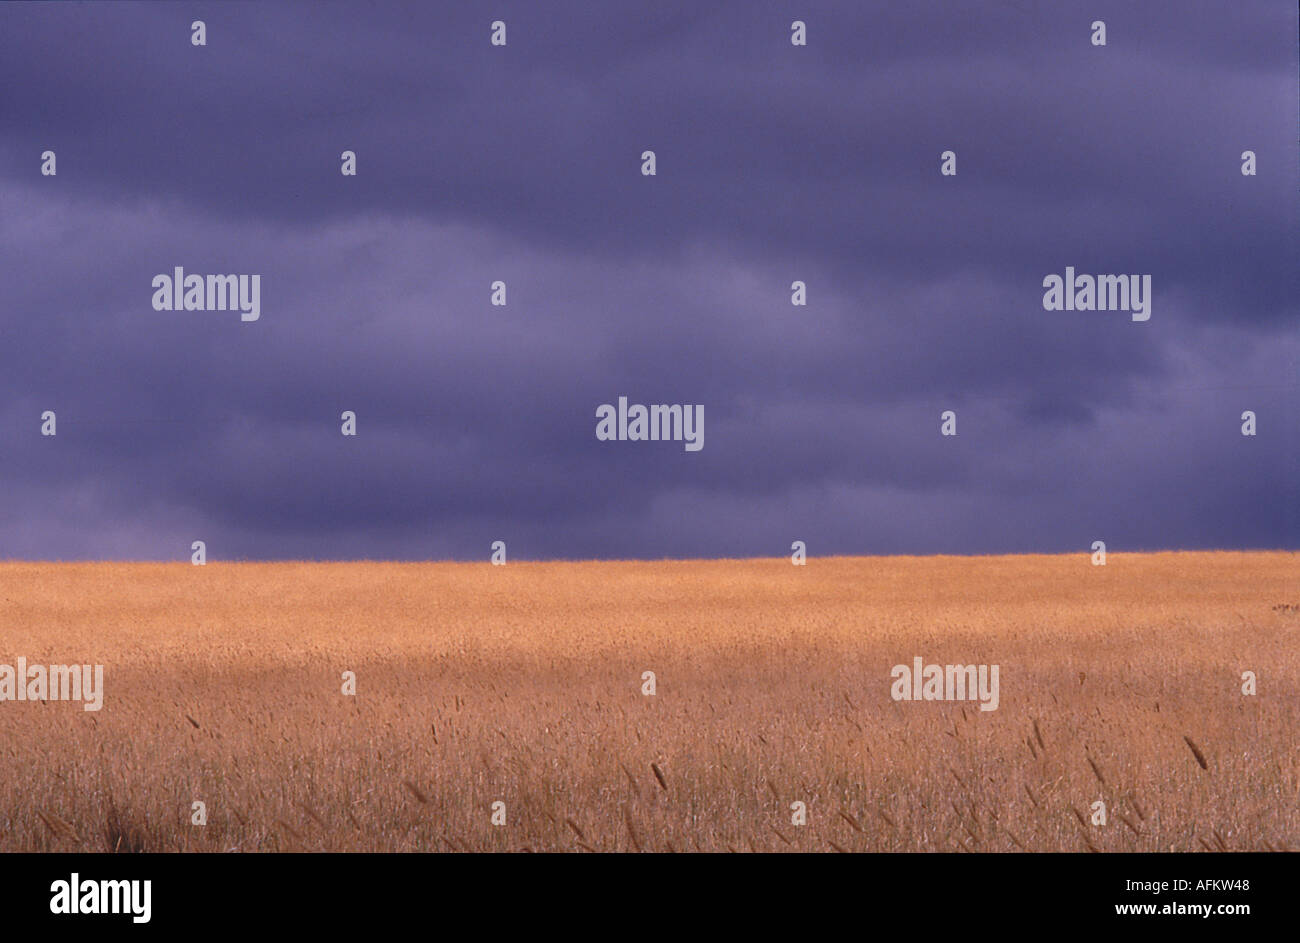 field of wheat under a stormy sky - Stock Image